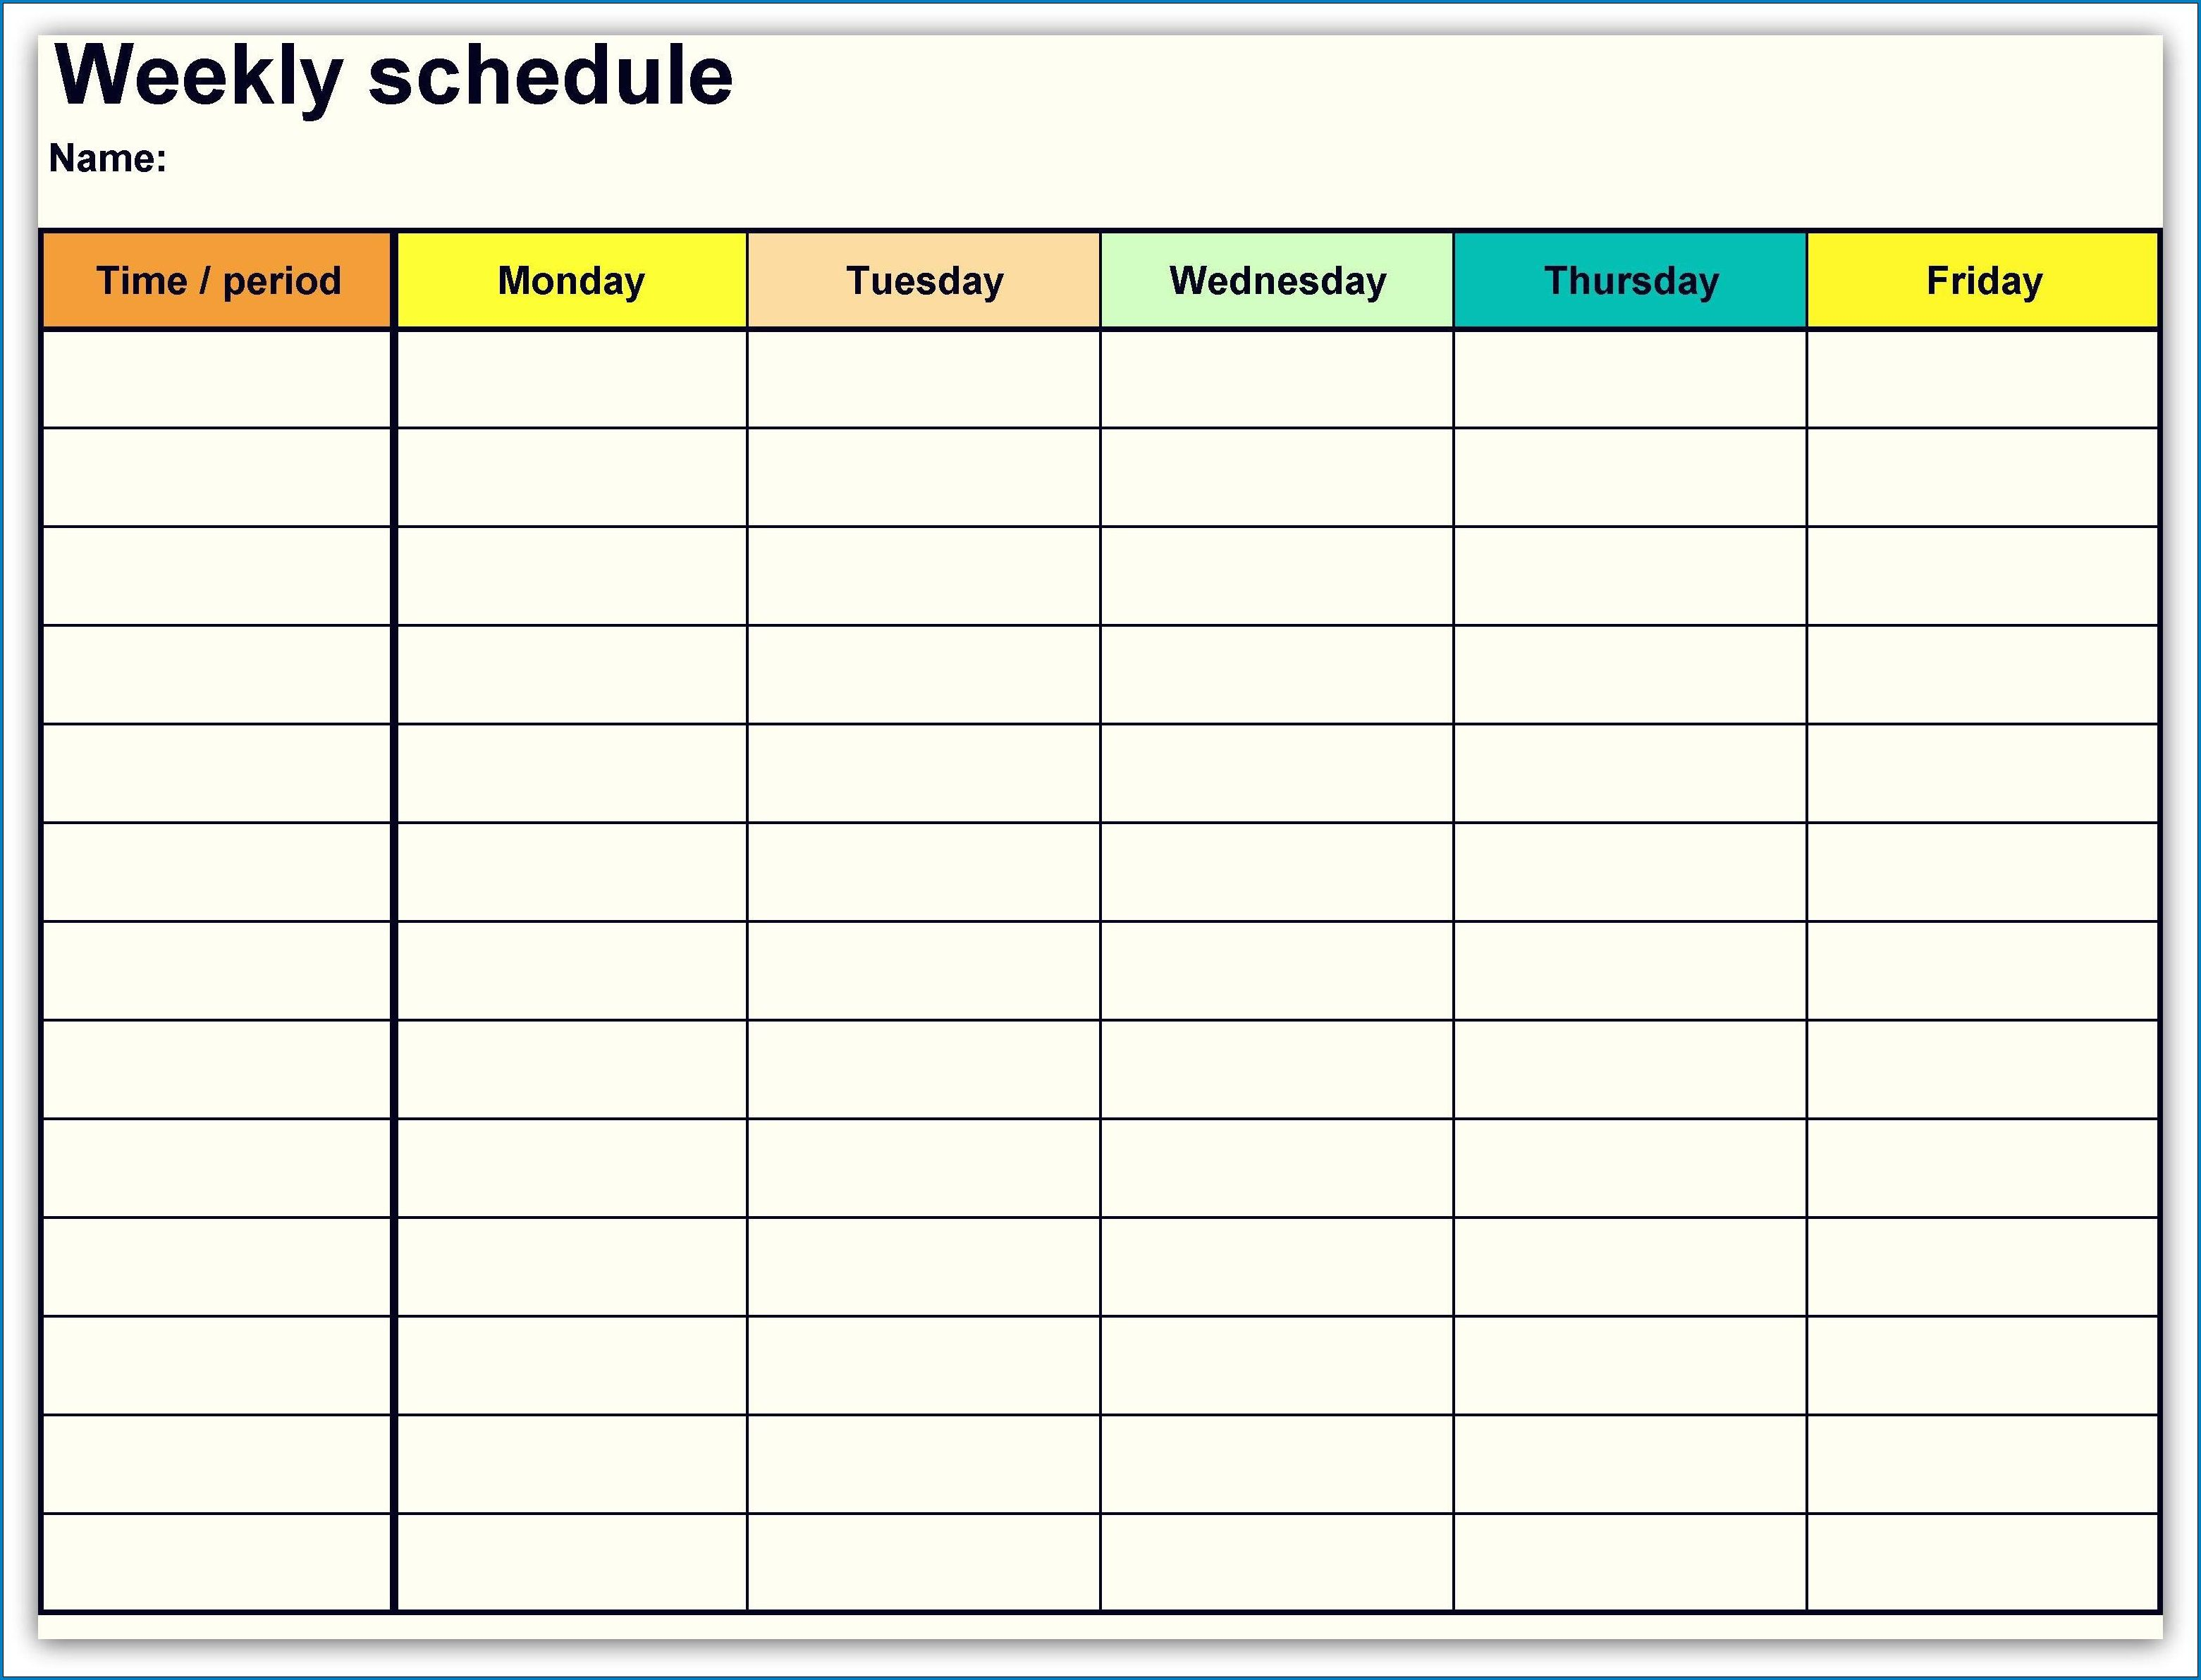 004 Impressive Free Weekly Calendar Template Image  Printable With Time Slot 2019 WordFull